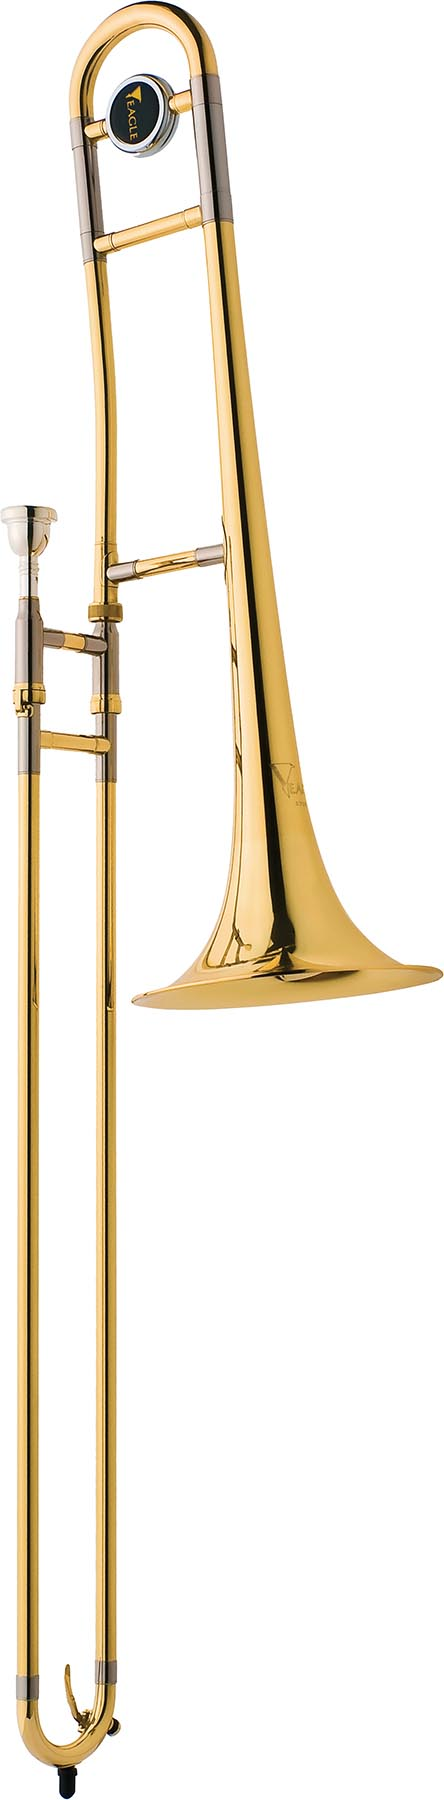 tv600 trombone de vara eagle tv600 laqueado vertical